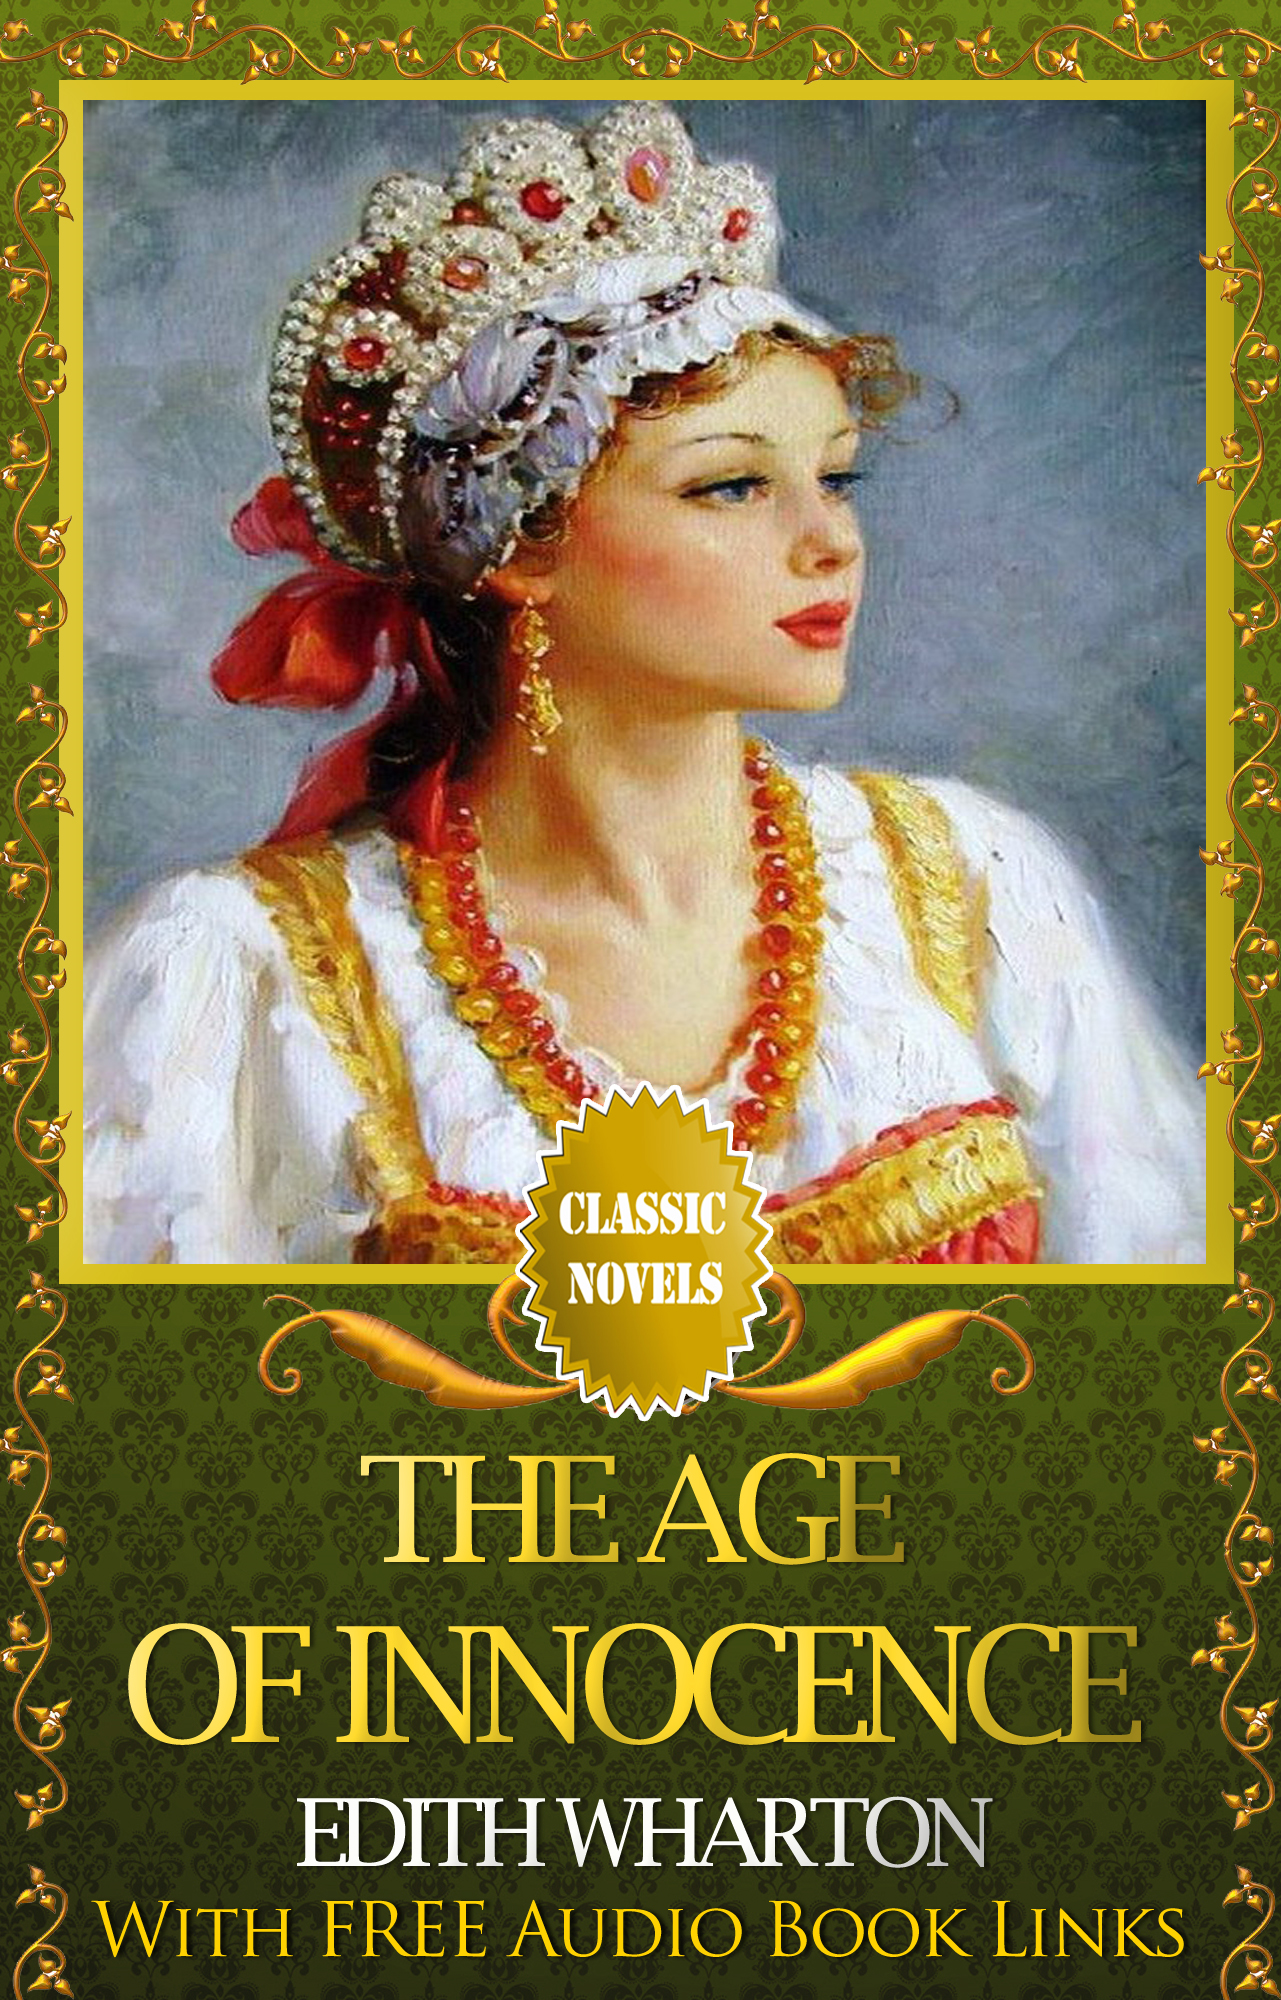 THE AGE OF INNOCENCE Classic Novels: New Illustrated [Free Audiobook Links]